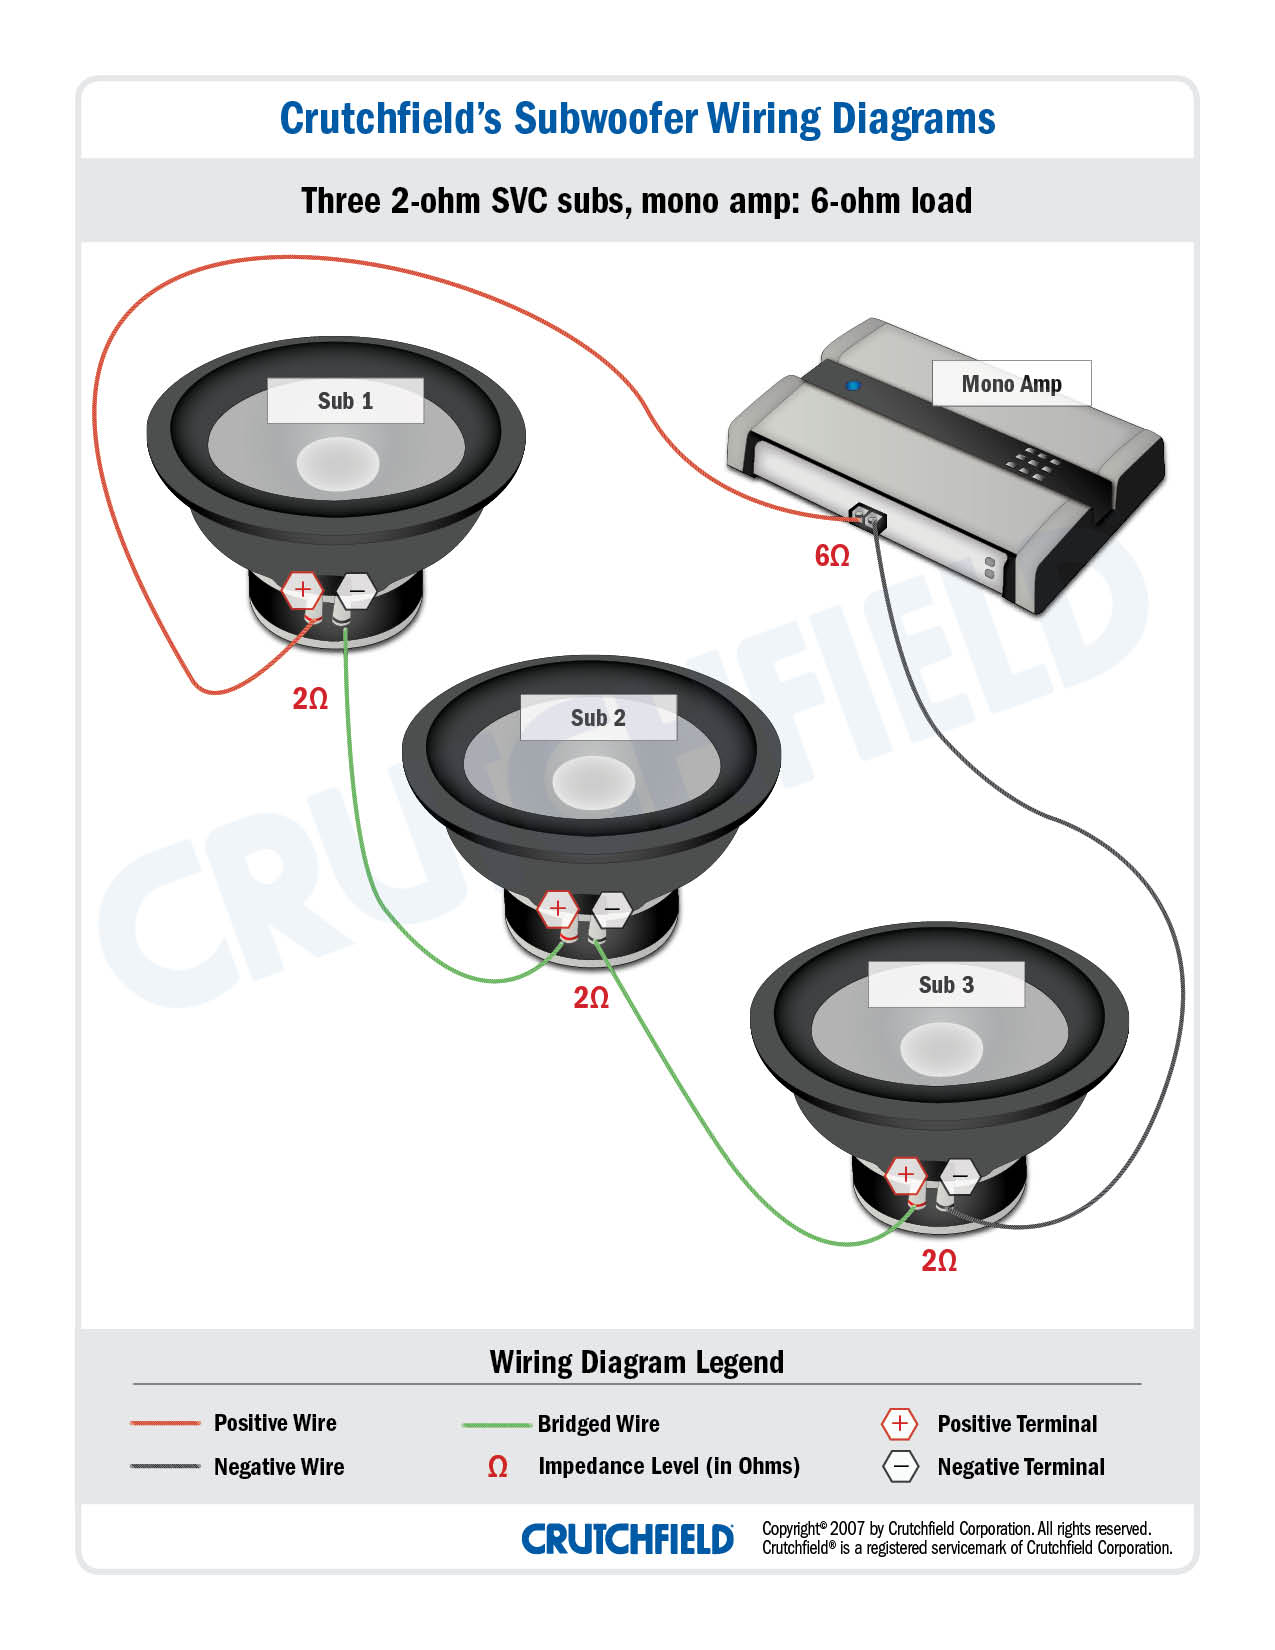 subwoofer wiring diagrams \u2014 how to wire your substhis diagram shows how three svc subs get wired in series in your case, on the diagram captions, change the 2s to 4s and the 6 to a 12